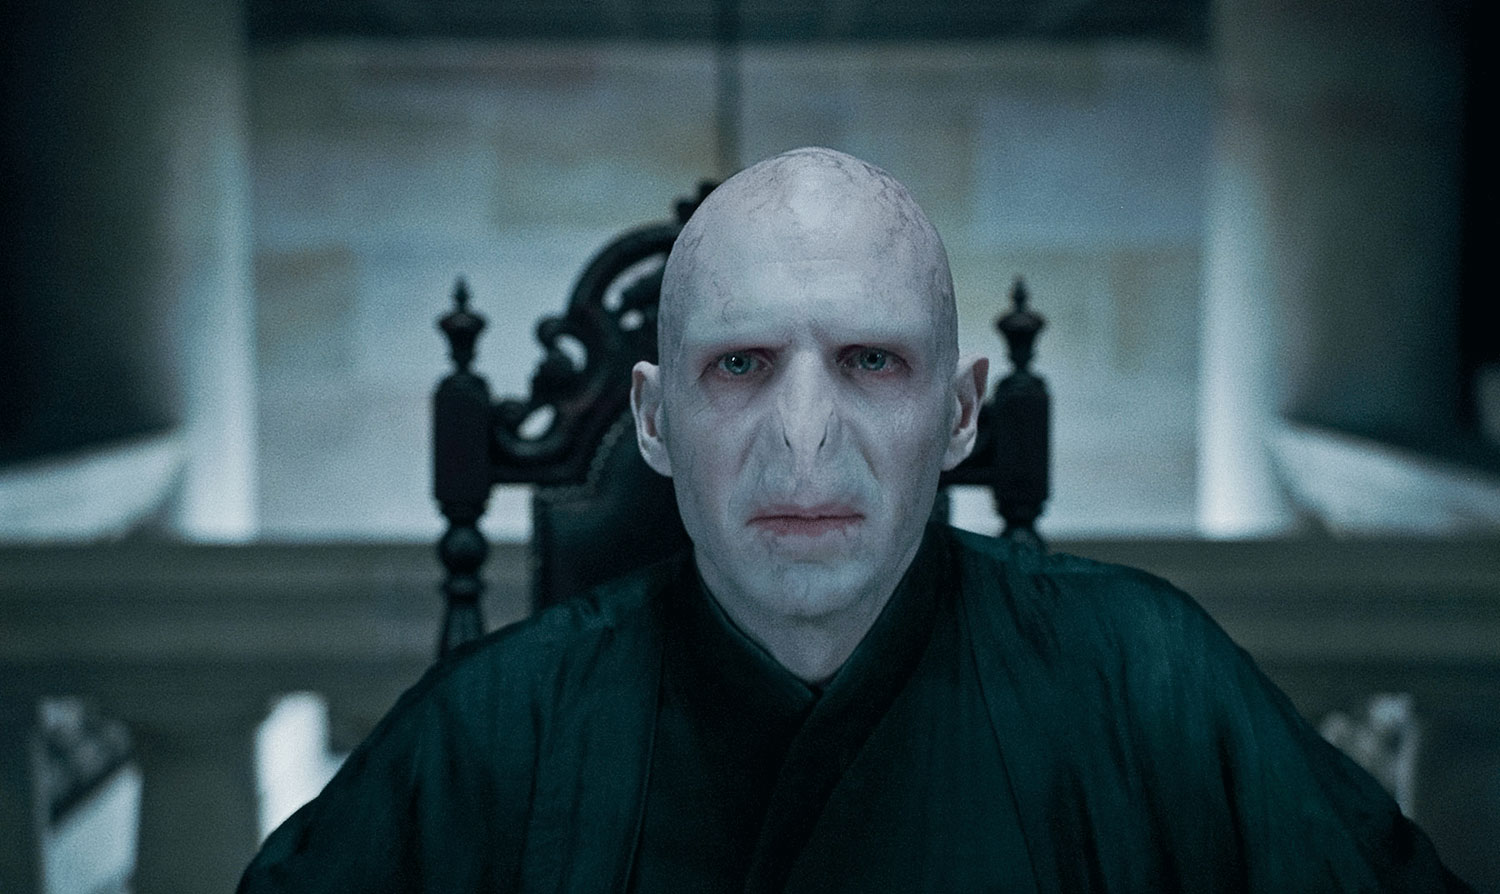 Lord Voldemort was played by five different actors ...